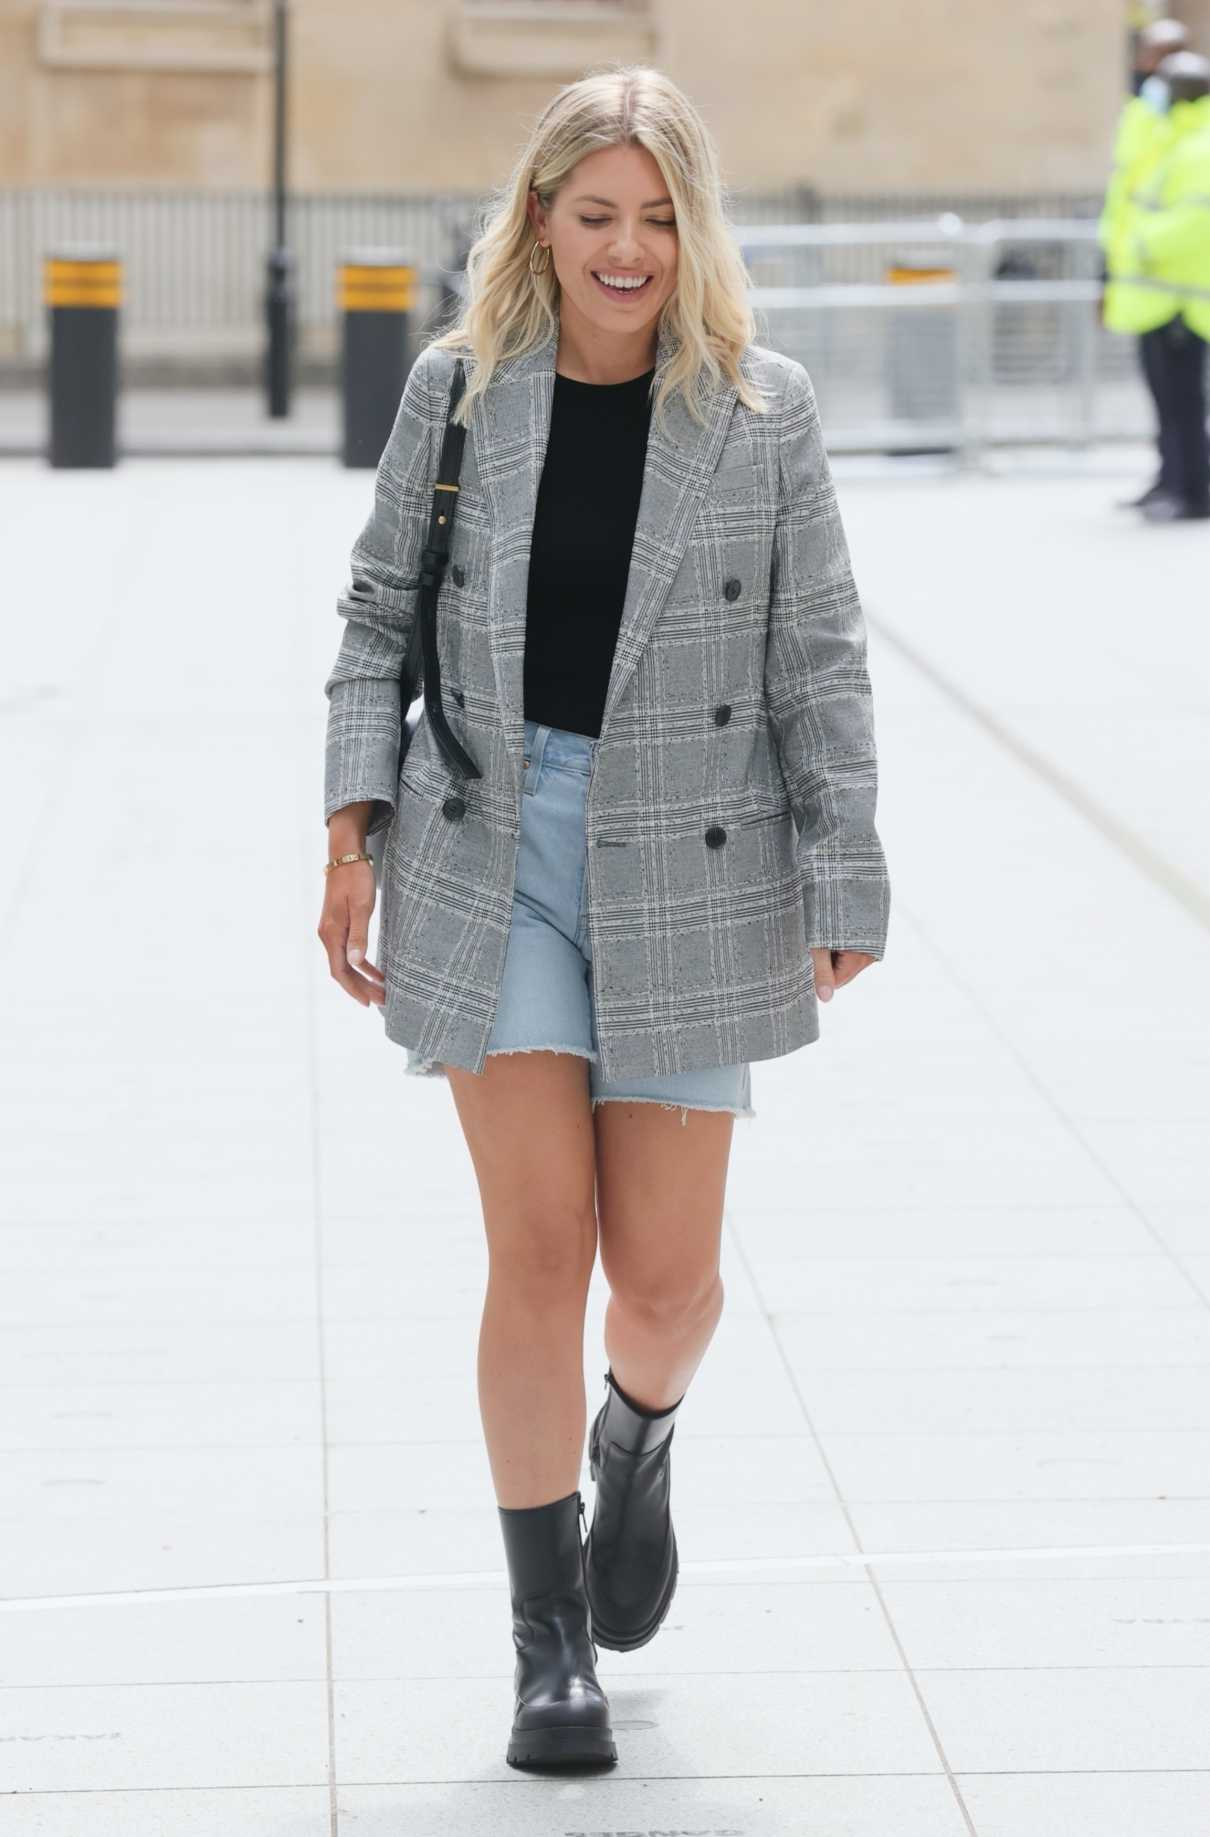 Mollie King in a Grey Blazer